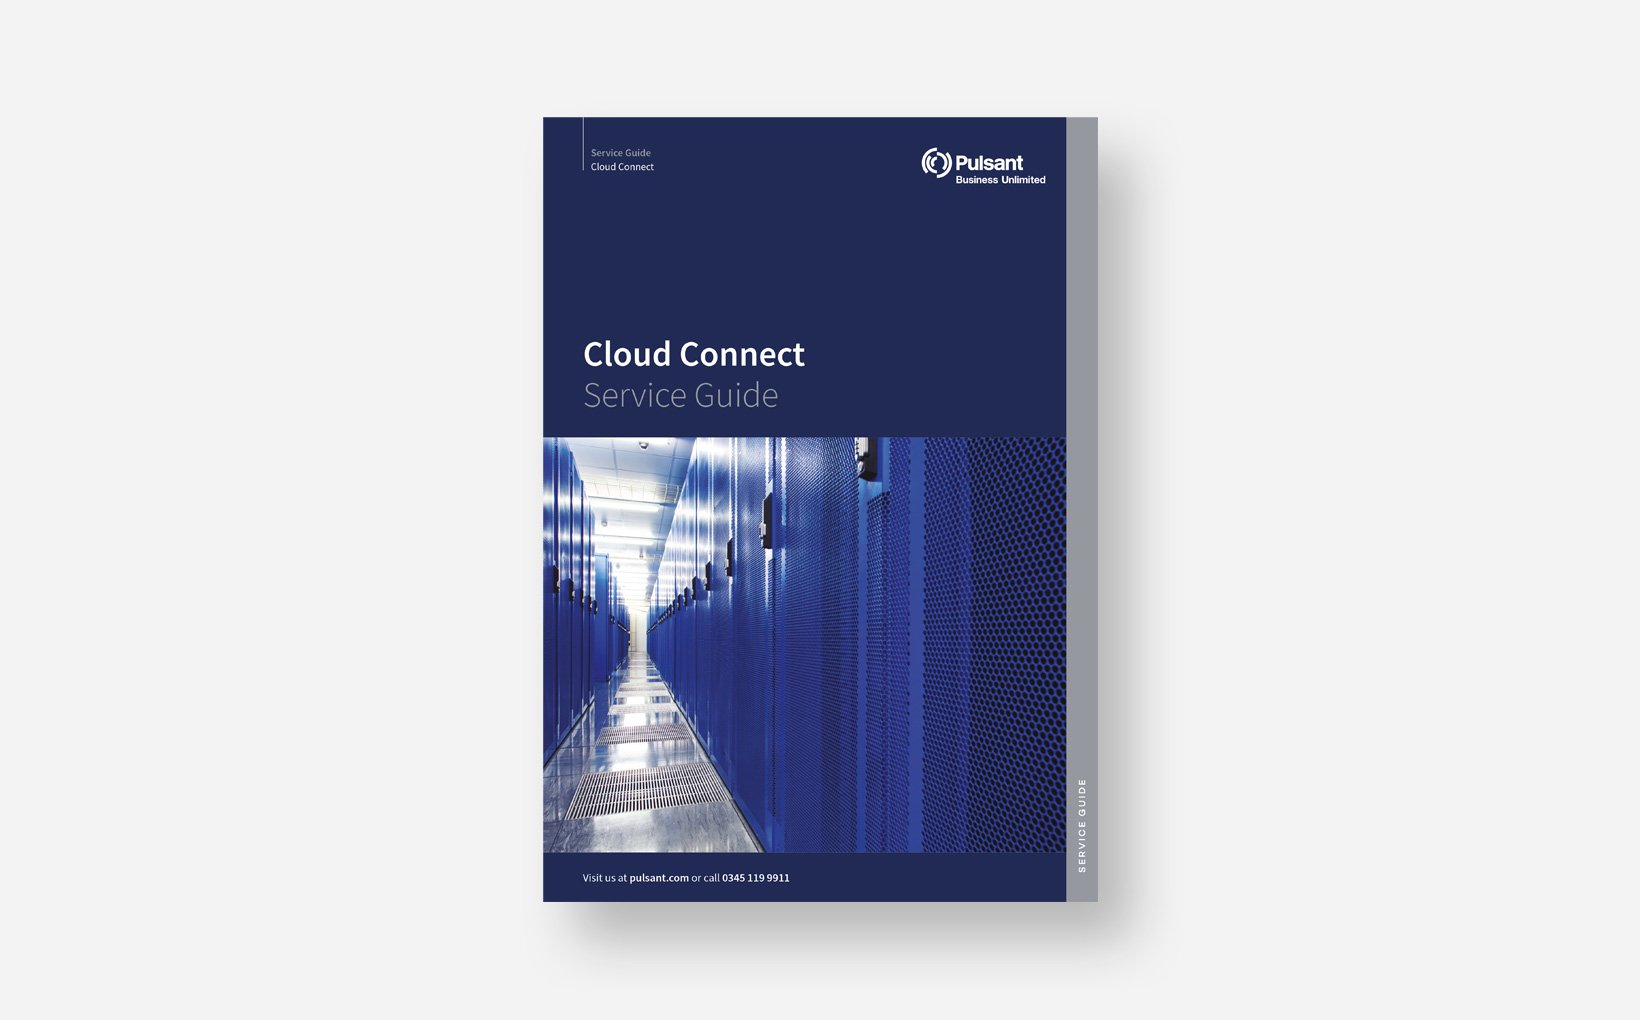 Everything you need to know about Cloud Connect